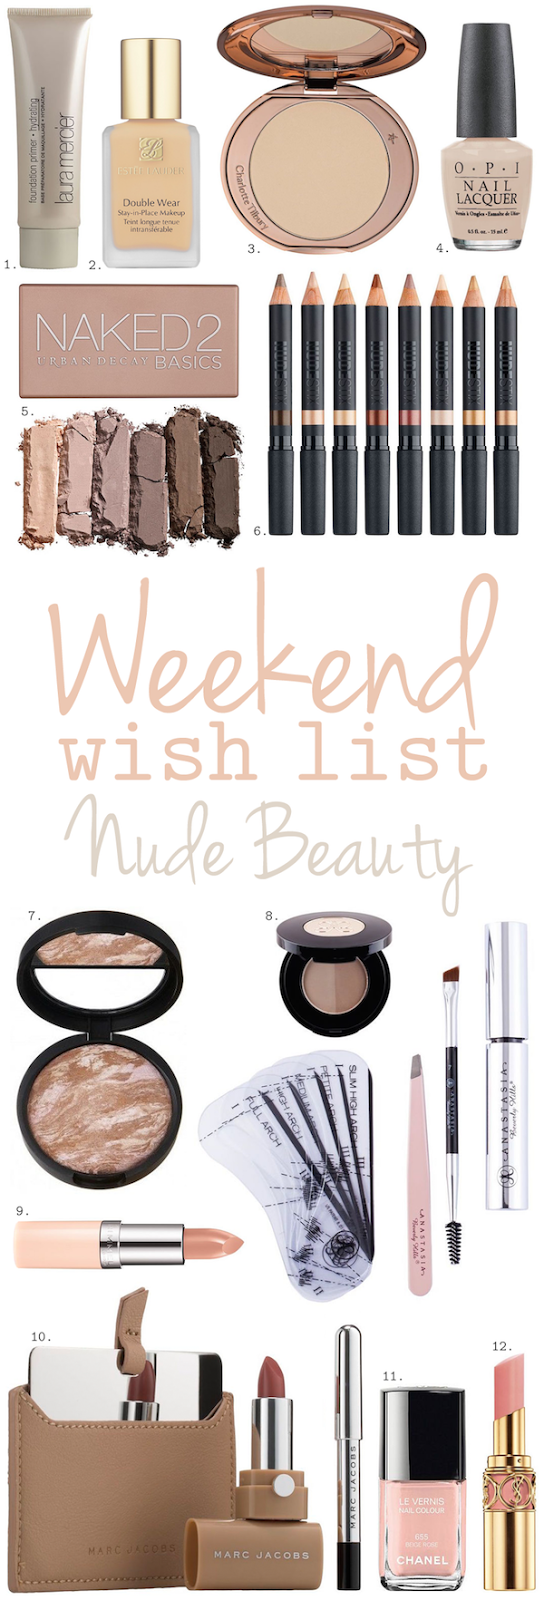 Weekend Wish List – Nude Beauty